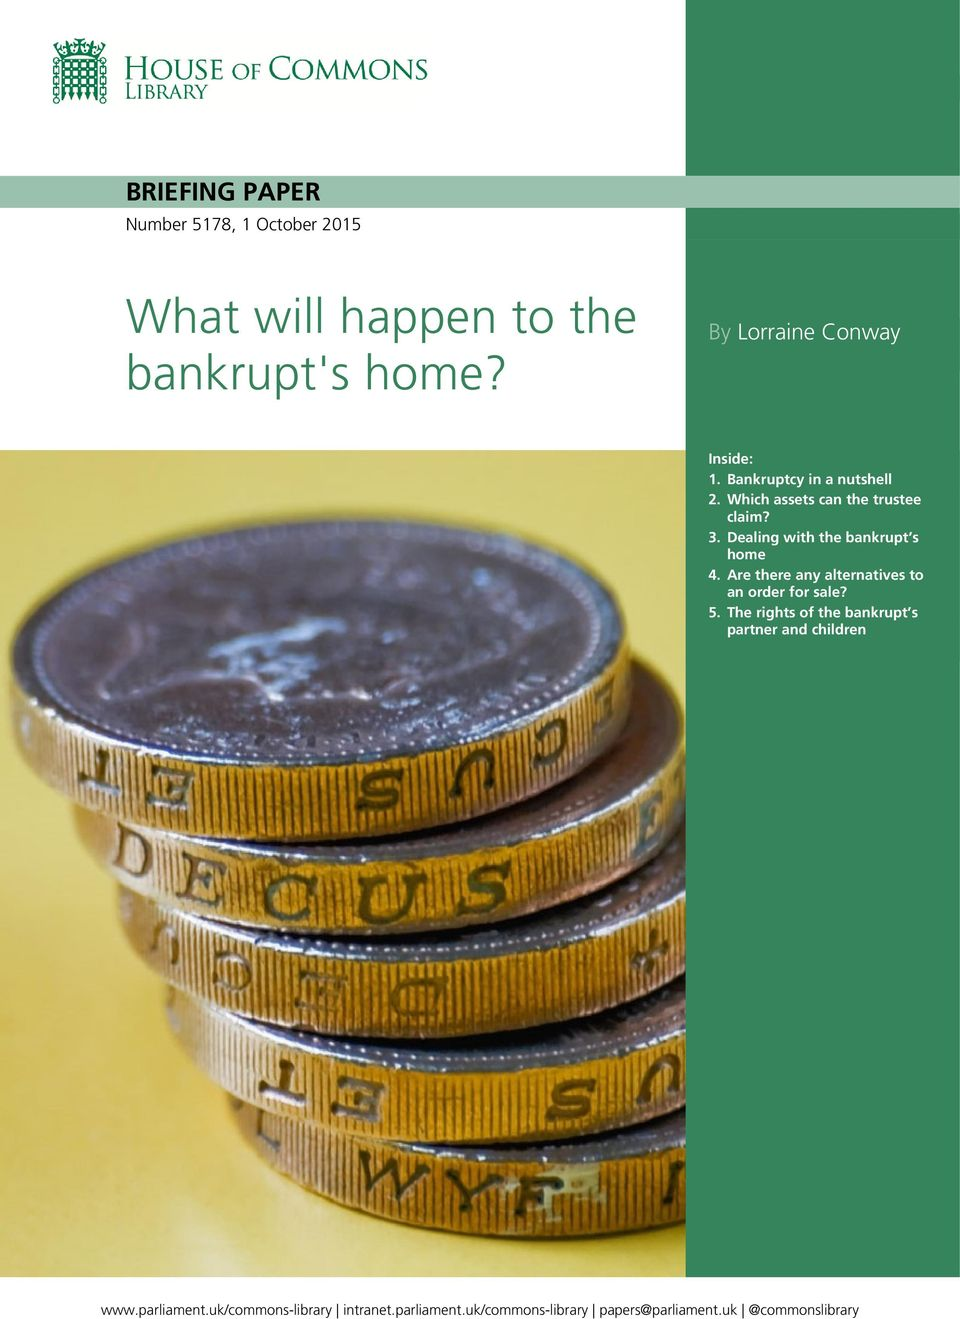 Dealing with the bankrupt s home 4. Are there any alternatives to an order for sale? 5.